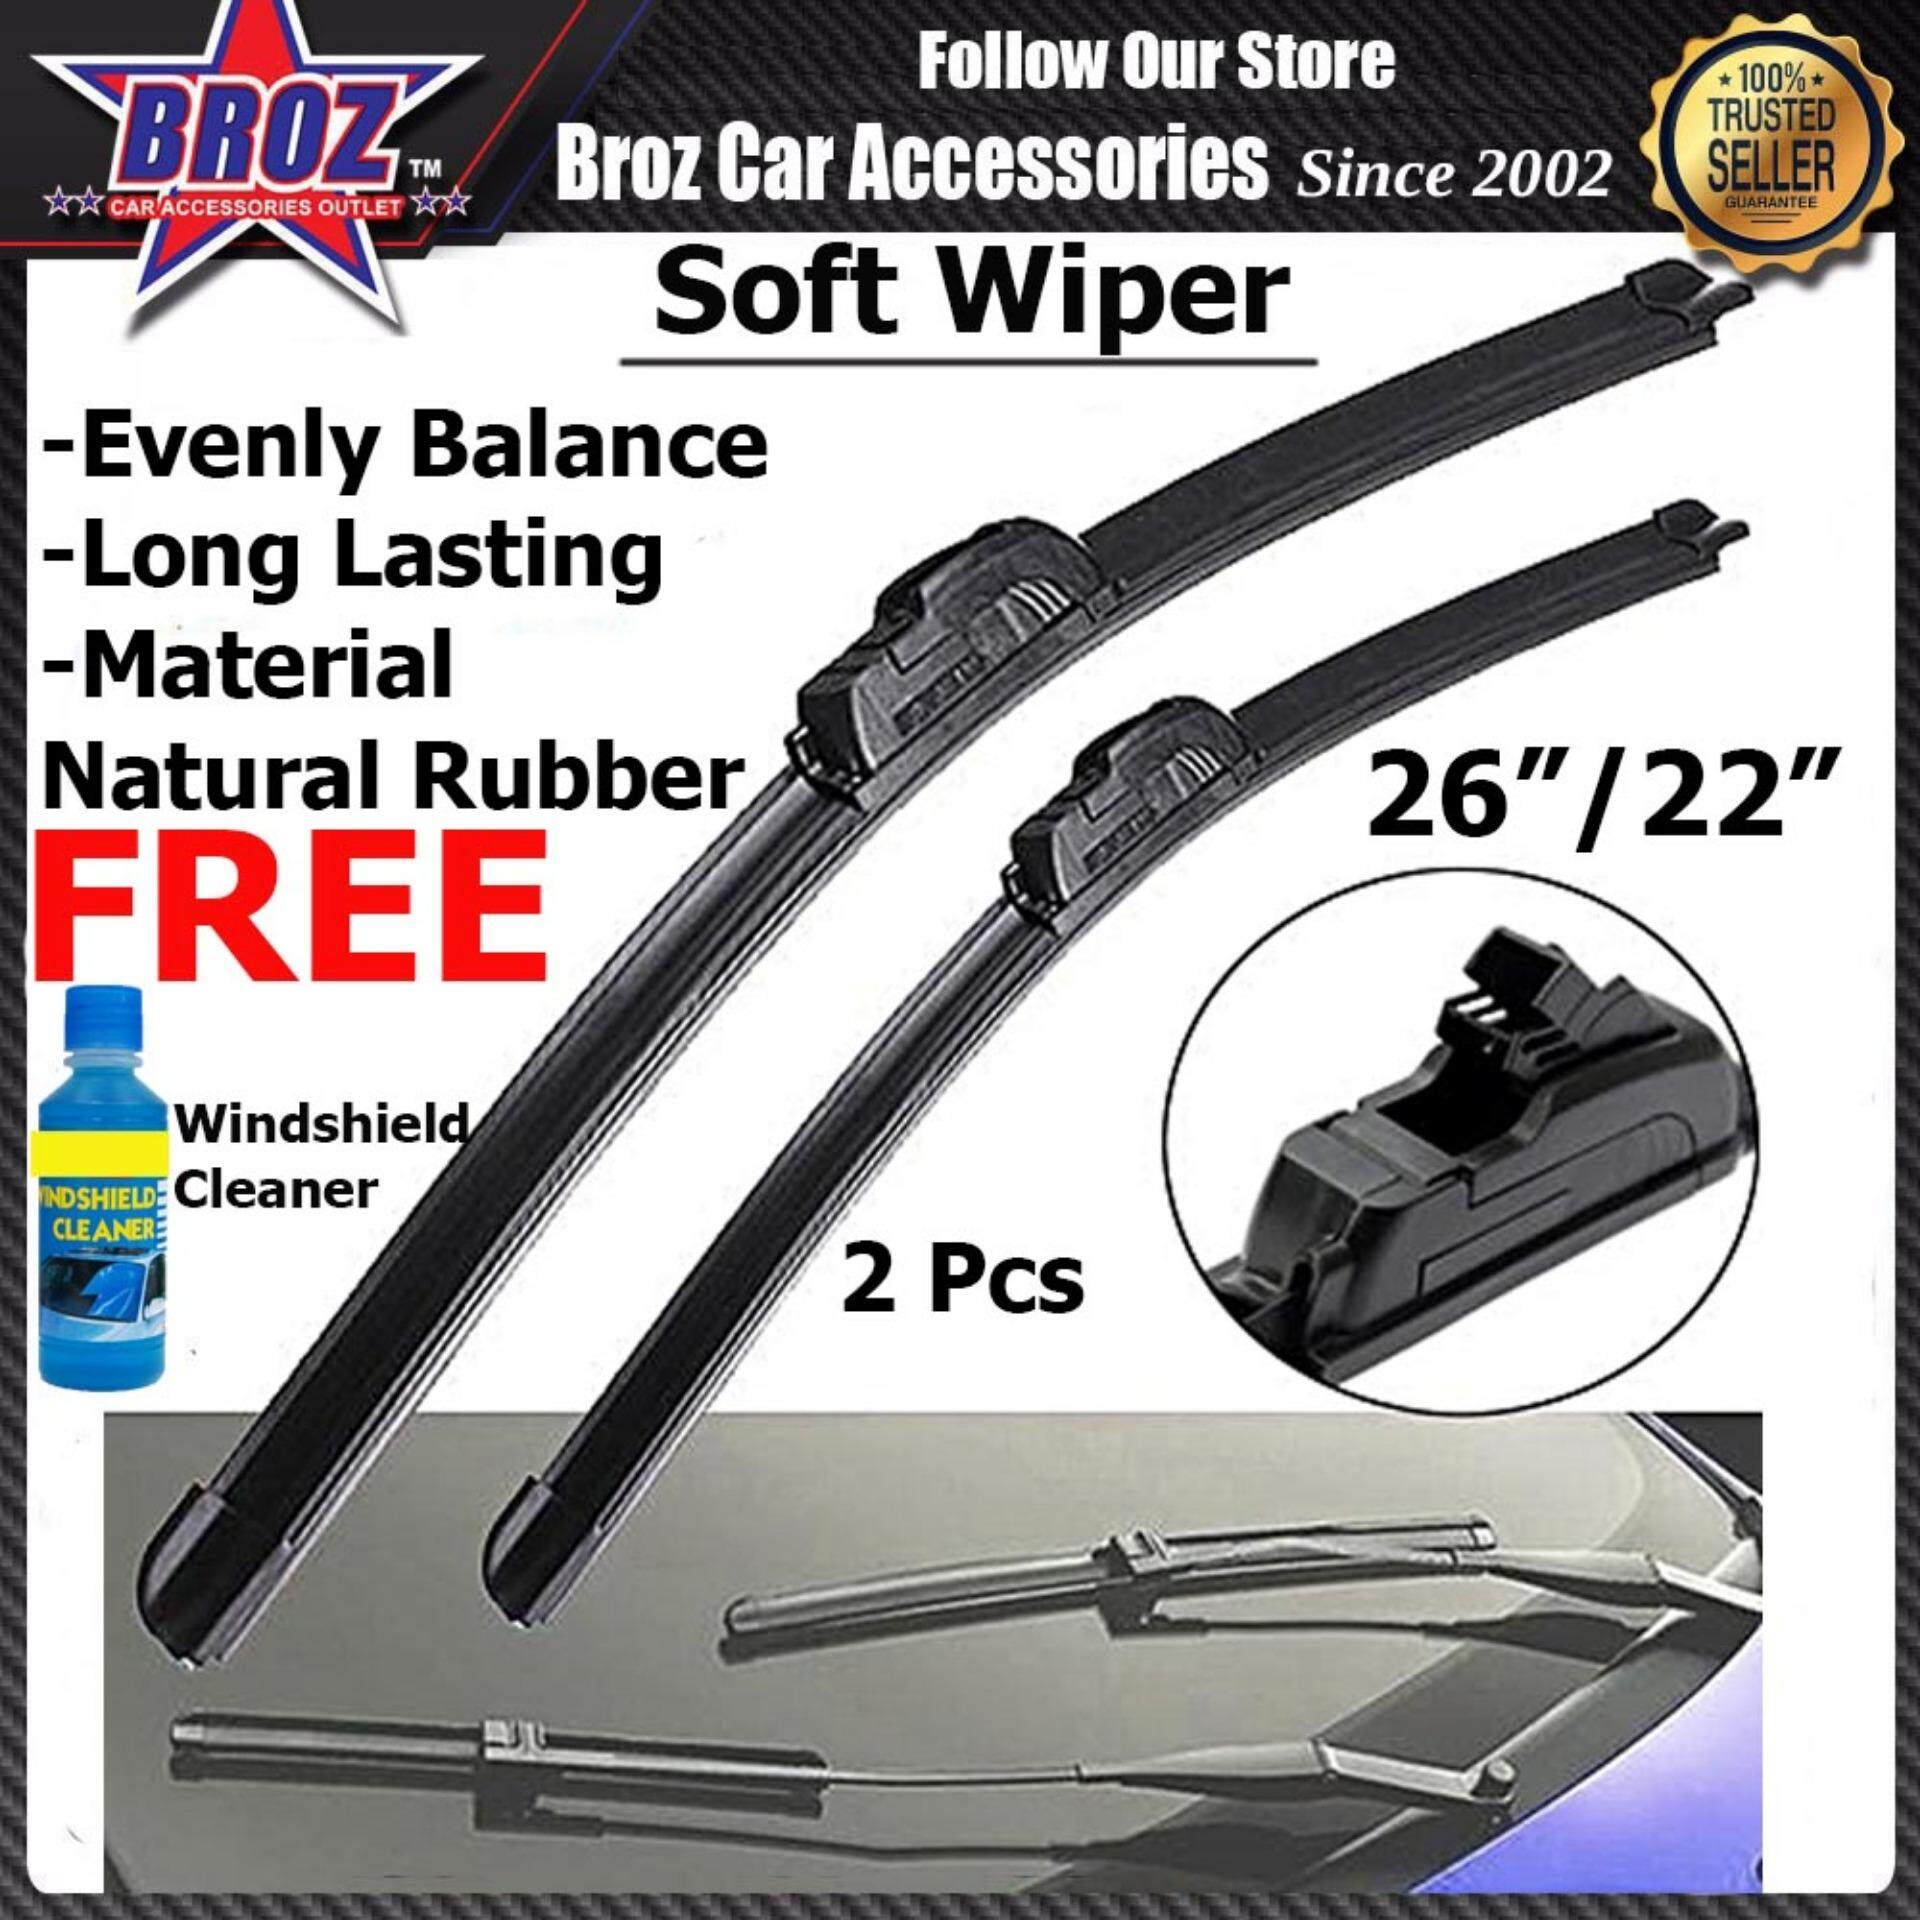 "Civic FD 2006-2011 Car Natural Rubber Soft Wiper 26""/22"" (2pcs)"